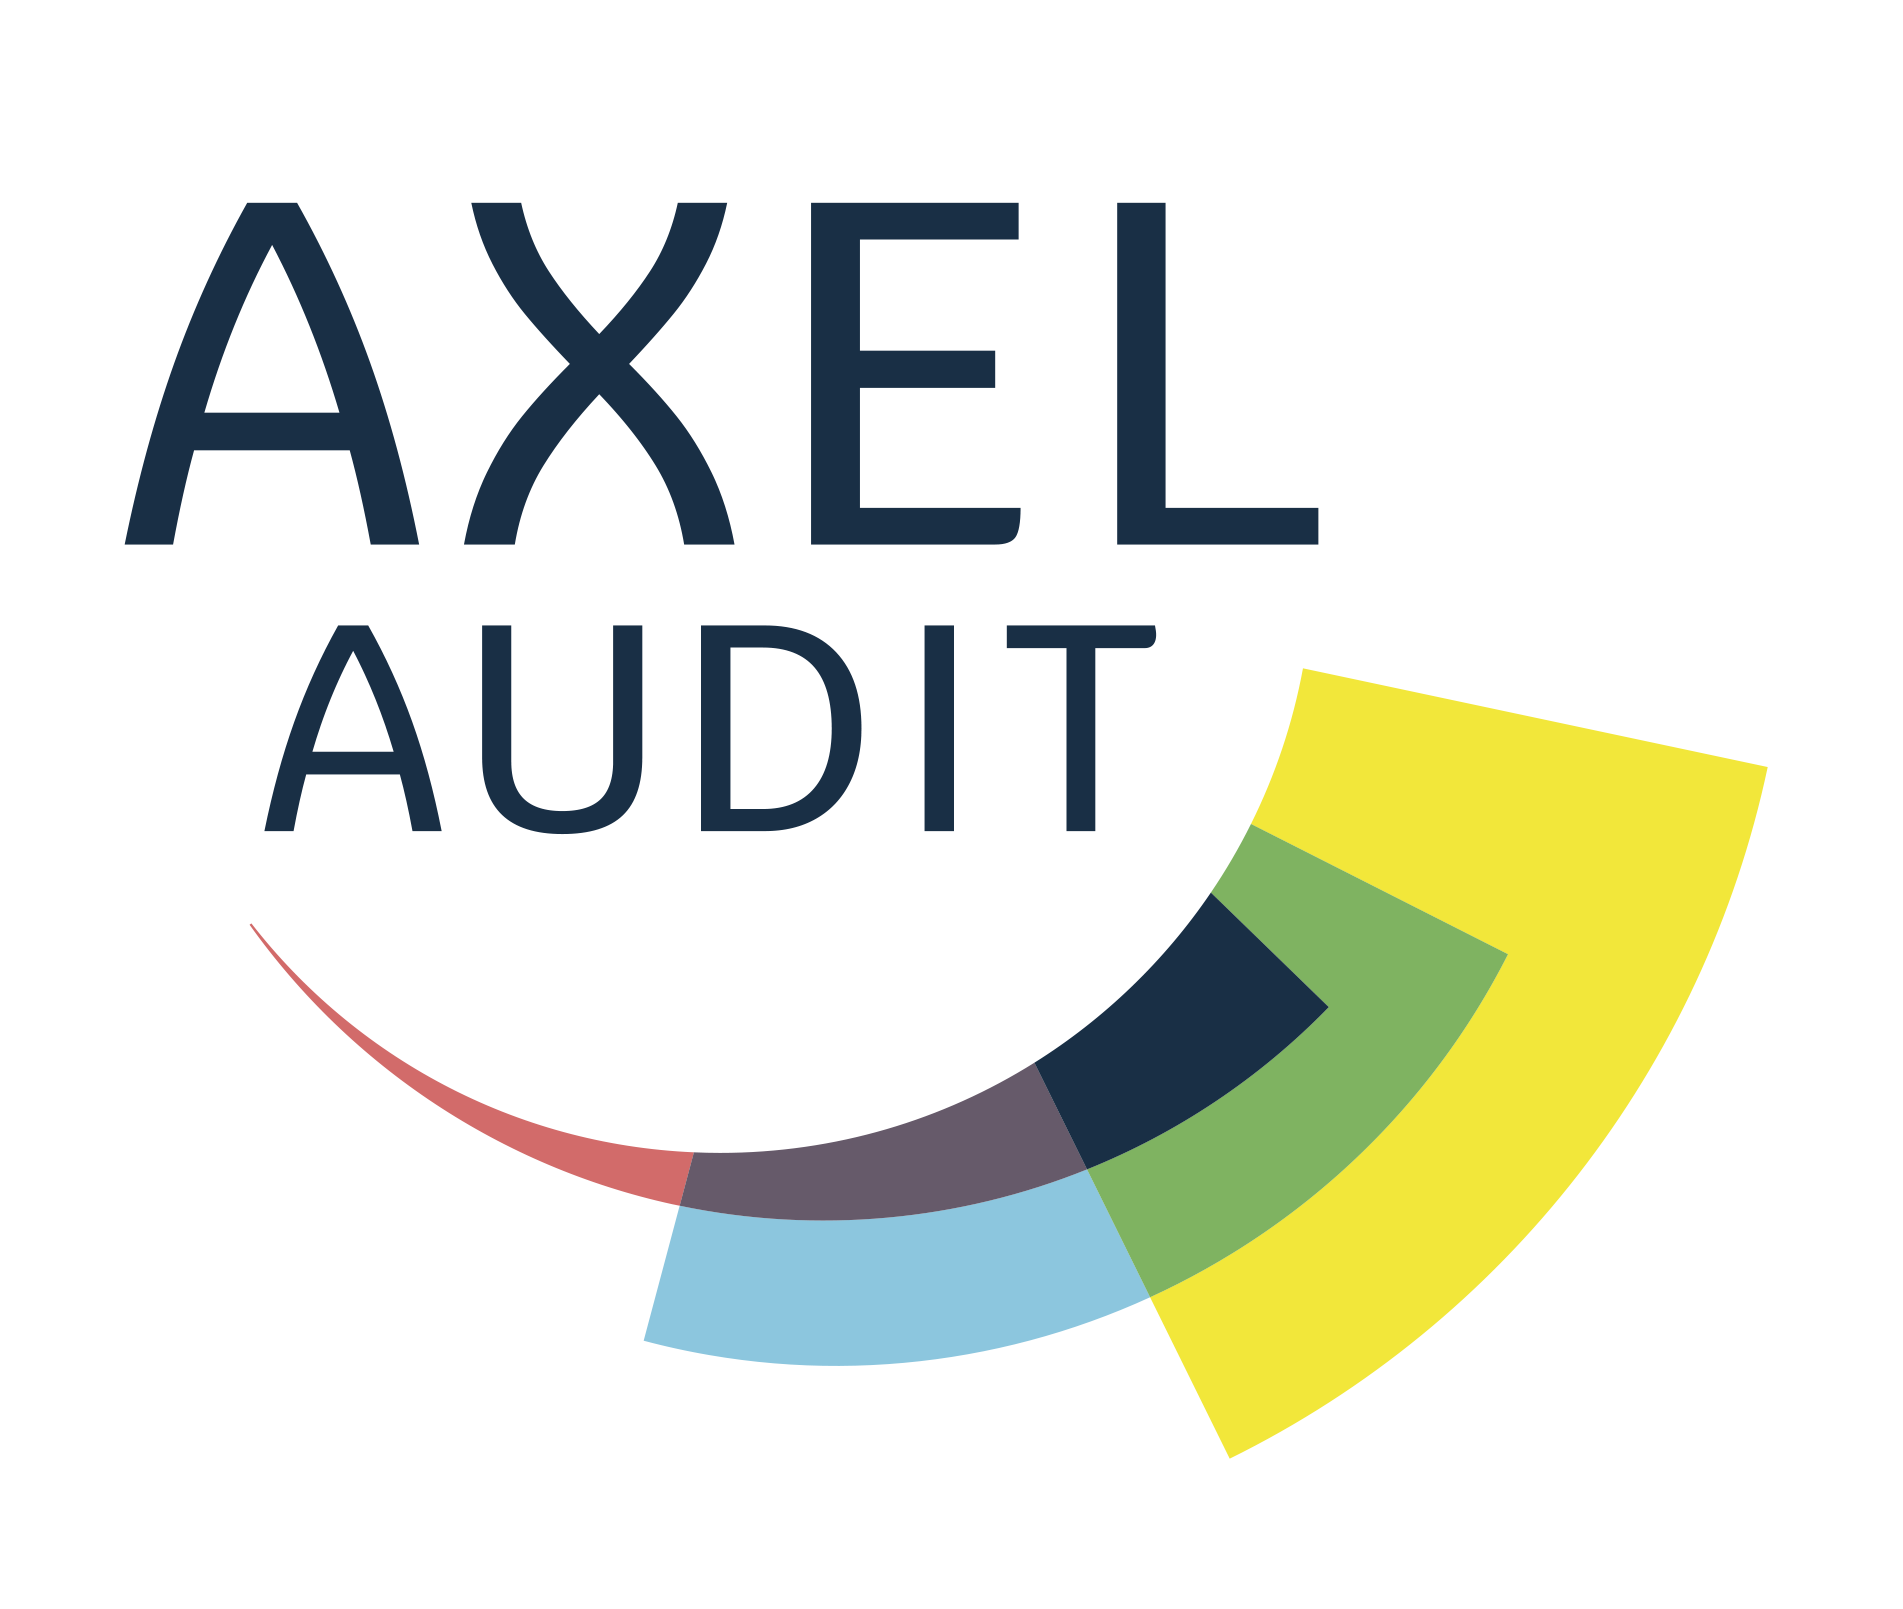 AXEL AUDIT simplifie l'audit externe